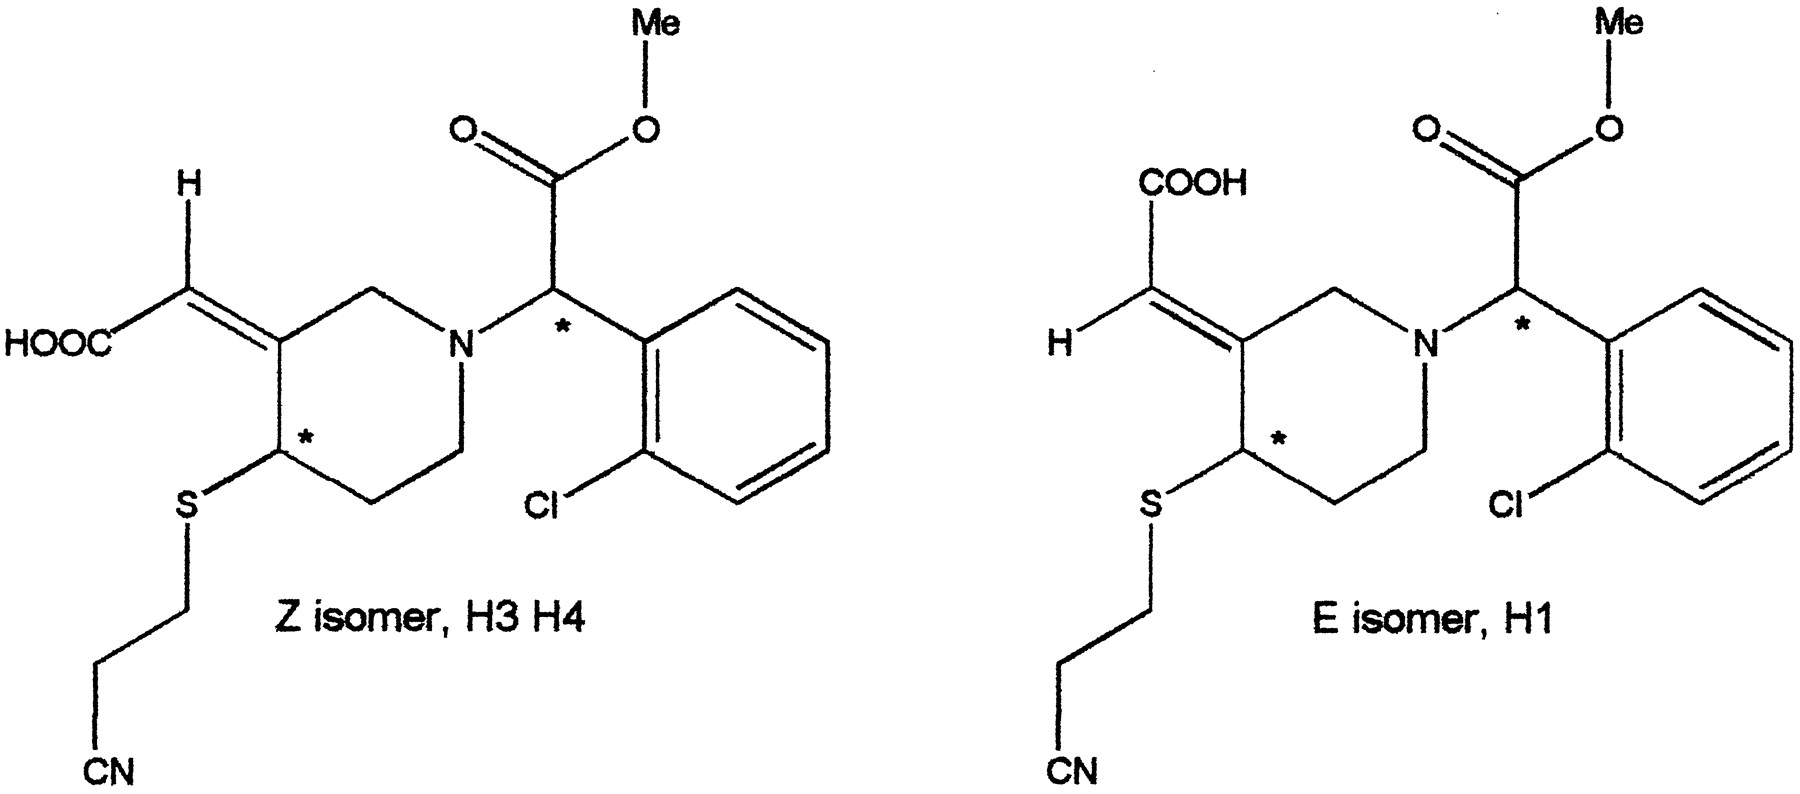 Structure And Stereochemistry Of The Active Metabolite Of